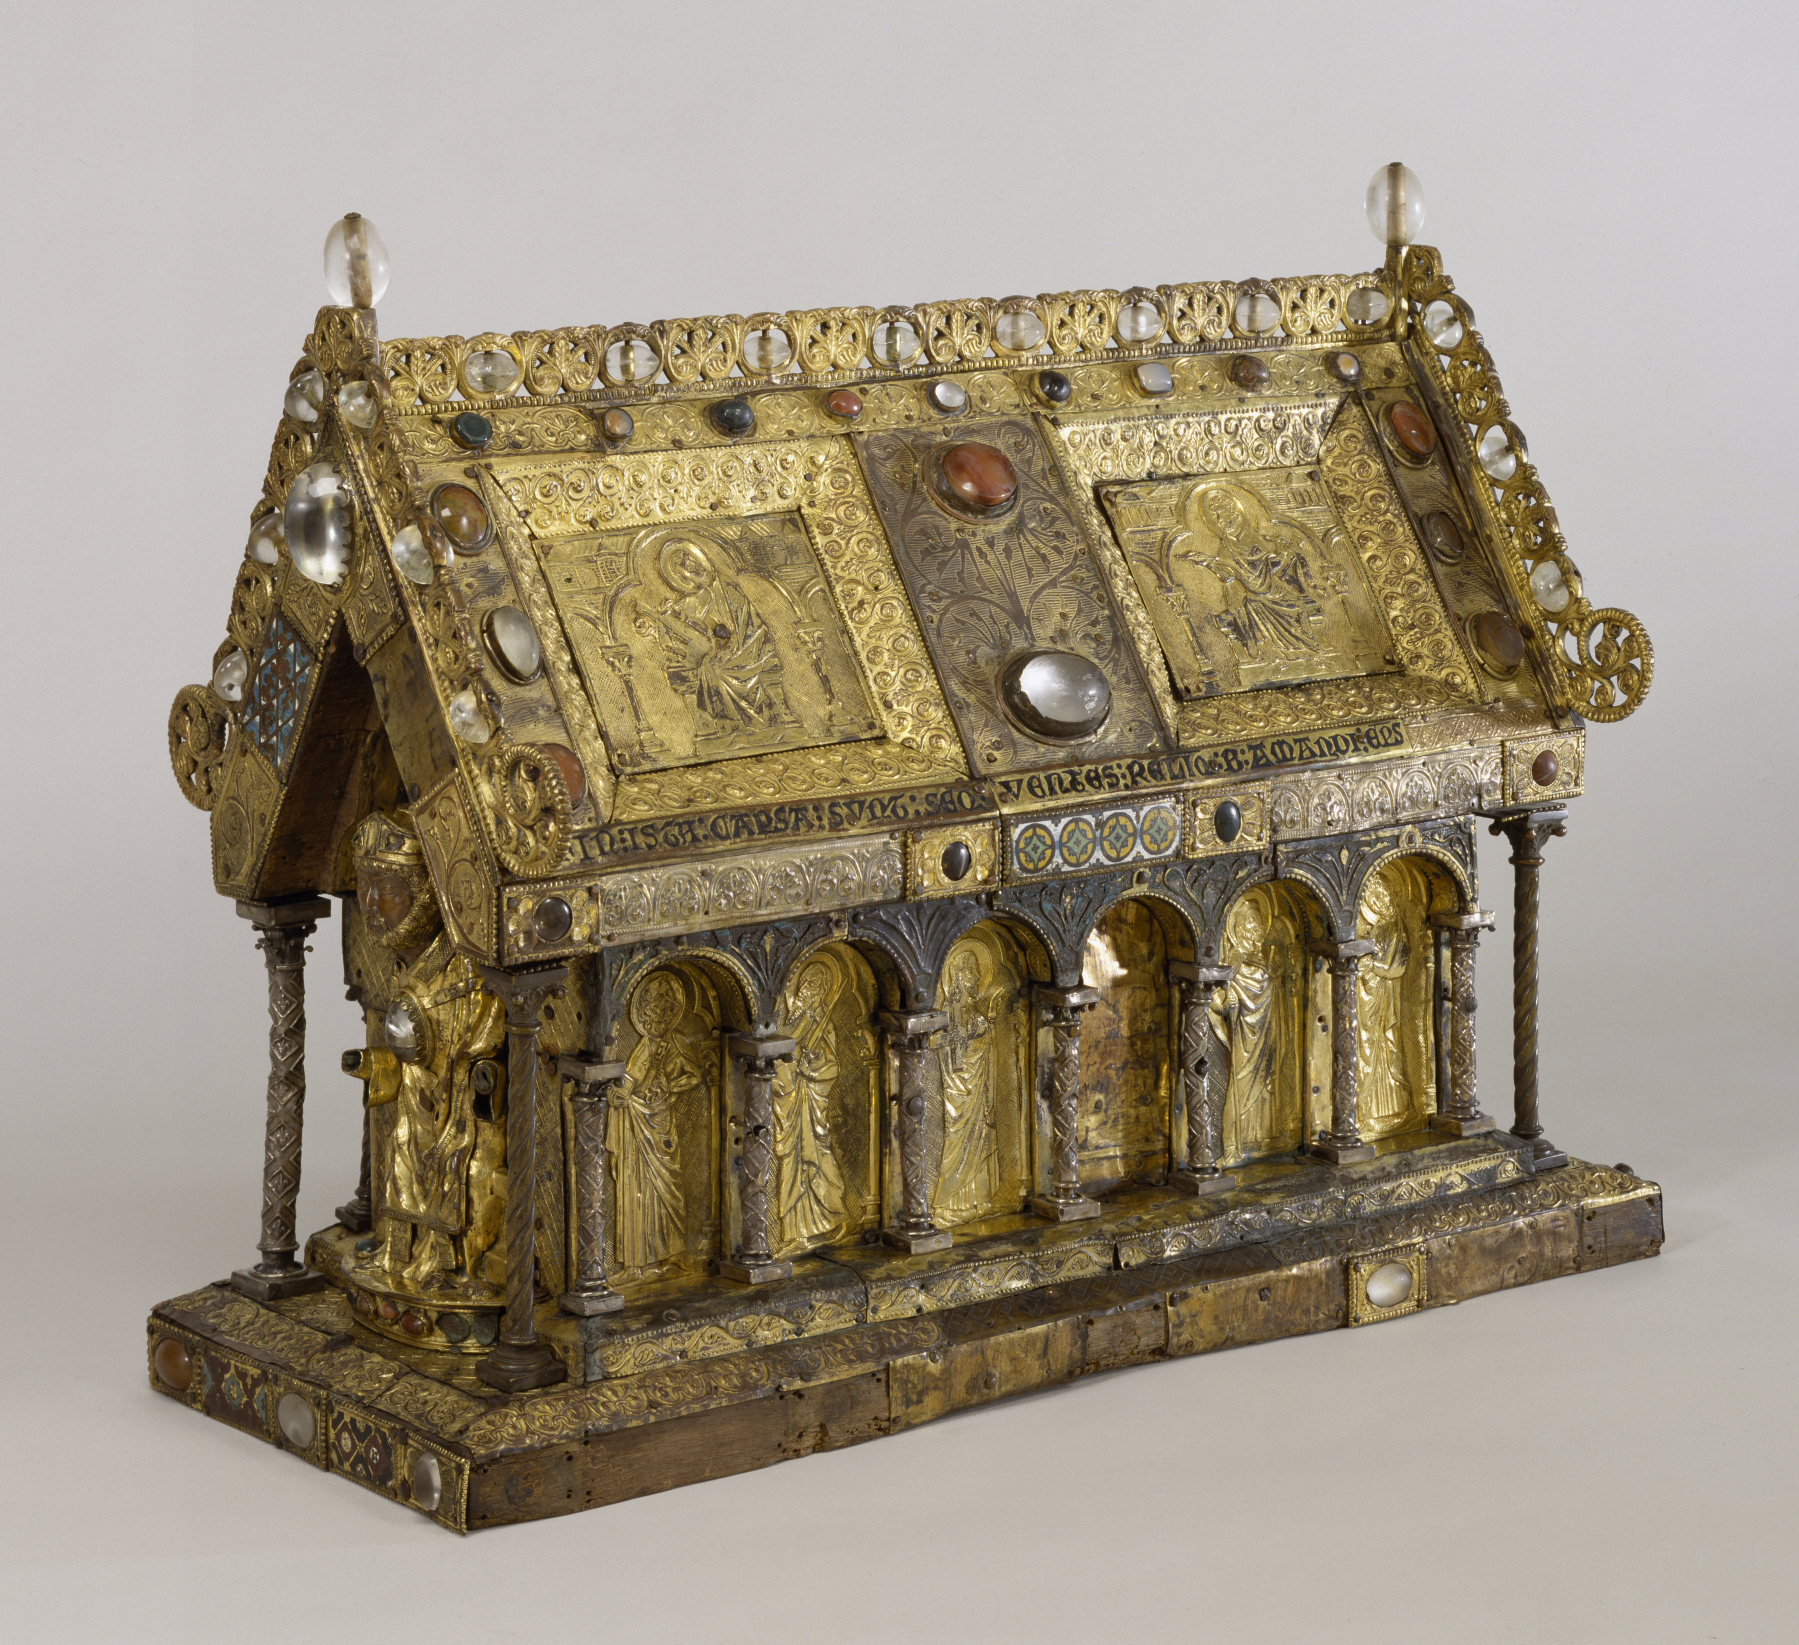 Flemish_-_Shrine_of_Saint_Amandus_-_Walters_539_-_Three_Quarter.jpg